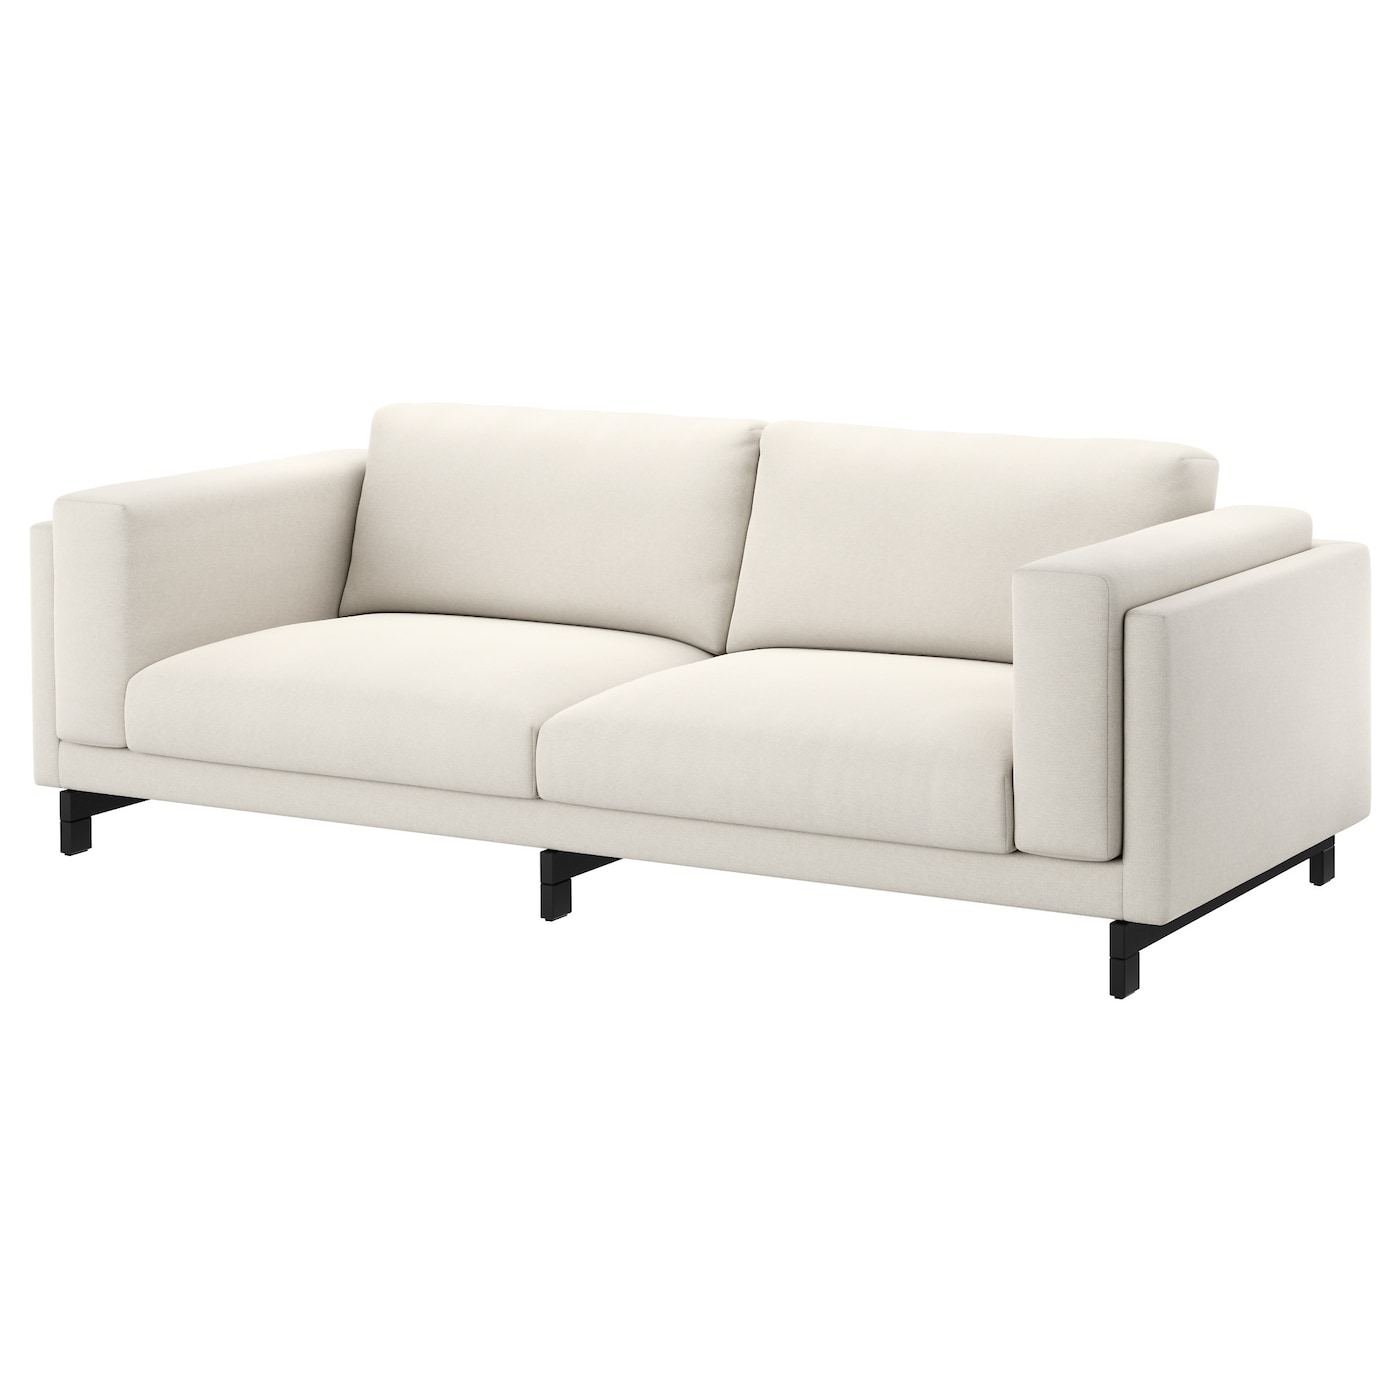 nockeby three seat sofa tallmyra light beige wood ikea. Black Bedroom Furniture Sets. Home Design Ideas